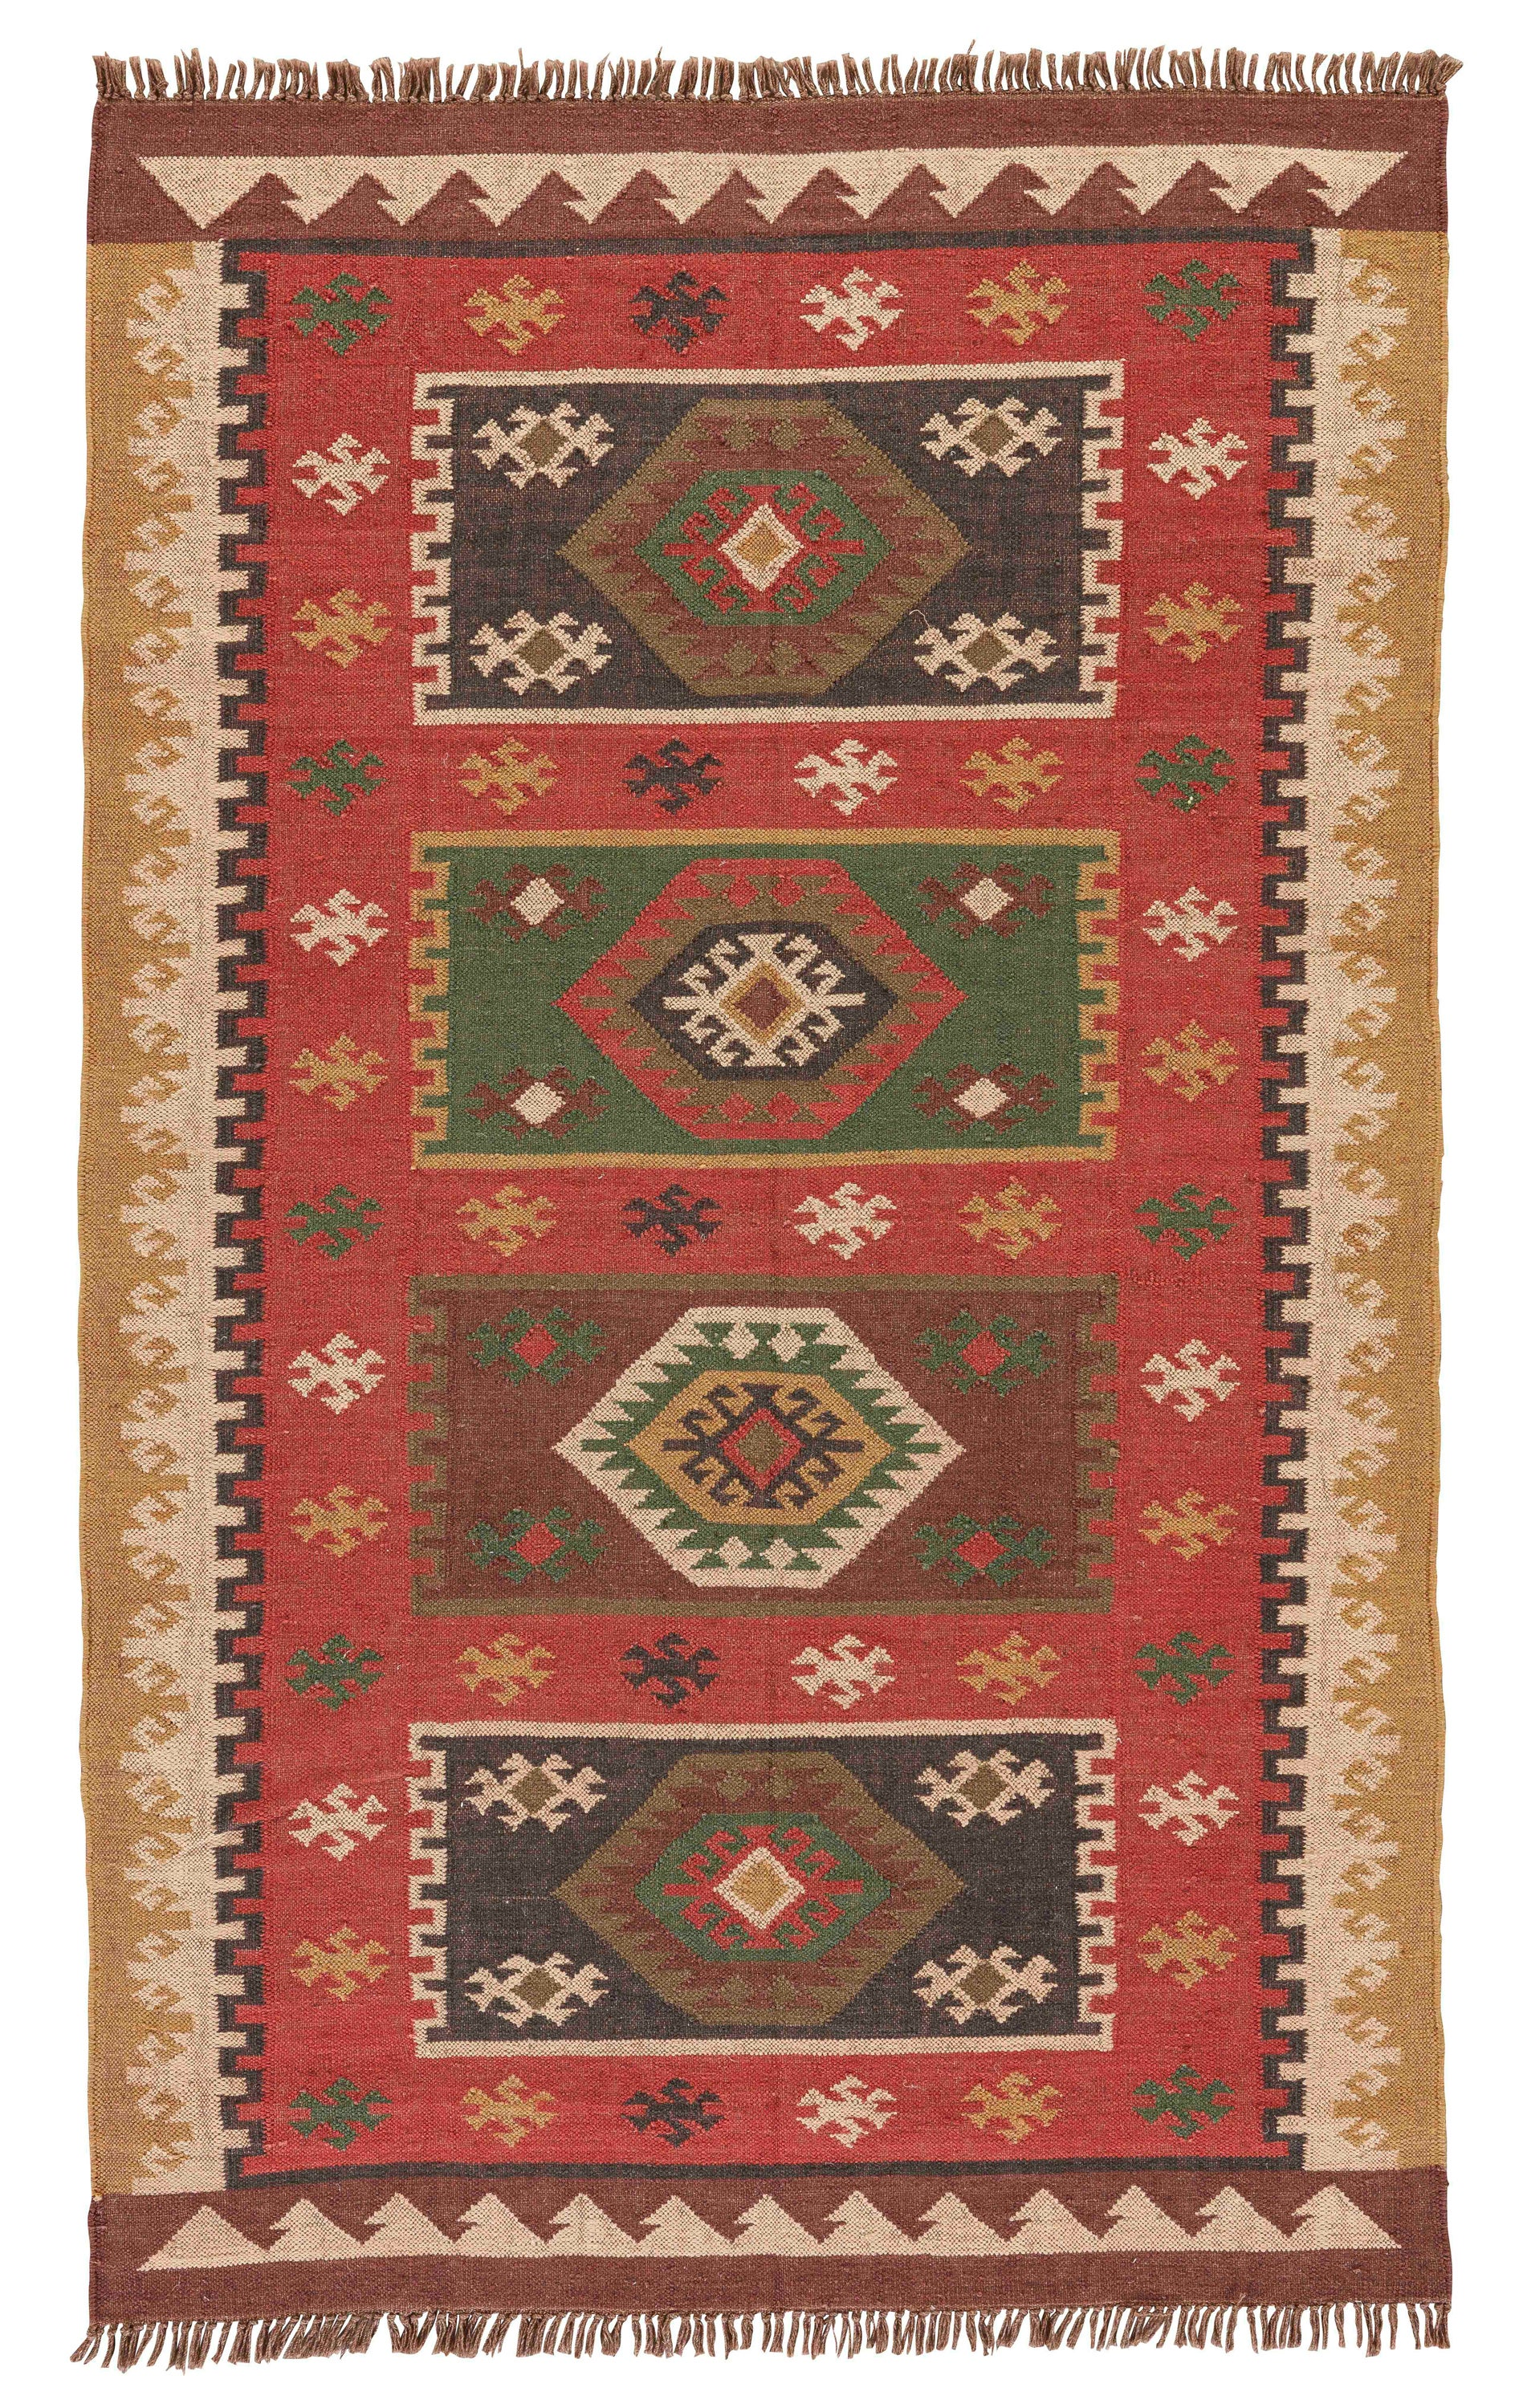 Rectangle Red Geometric Dhurrie Jute & Natural Fibers Southwestern recommended for Kitchen, Bedroom, Bathroom, Dining Room, Office, Hallway, Living Room